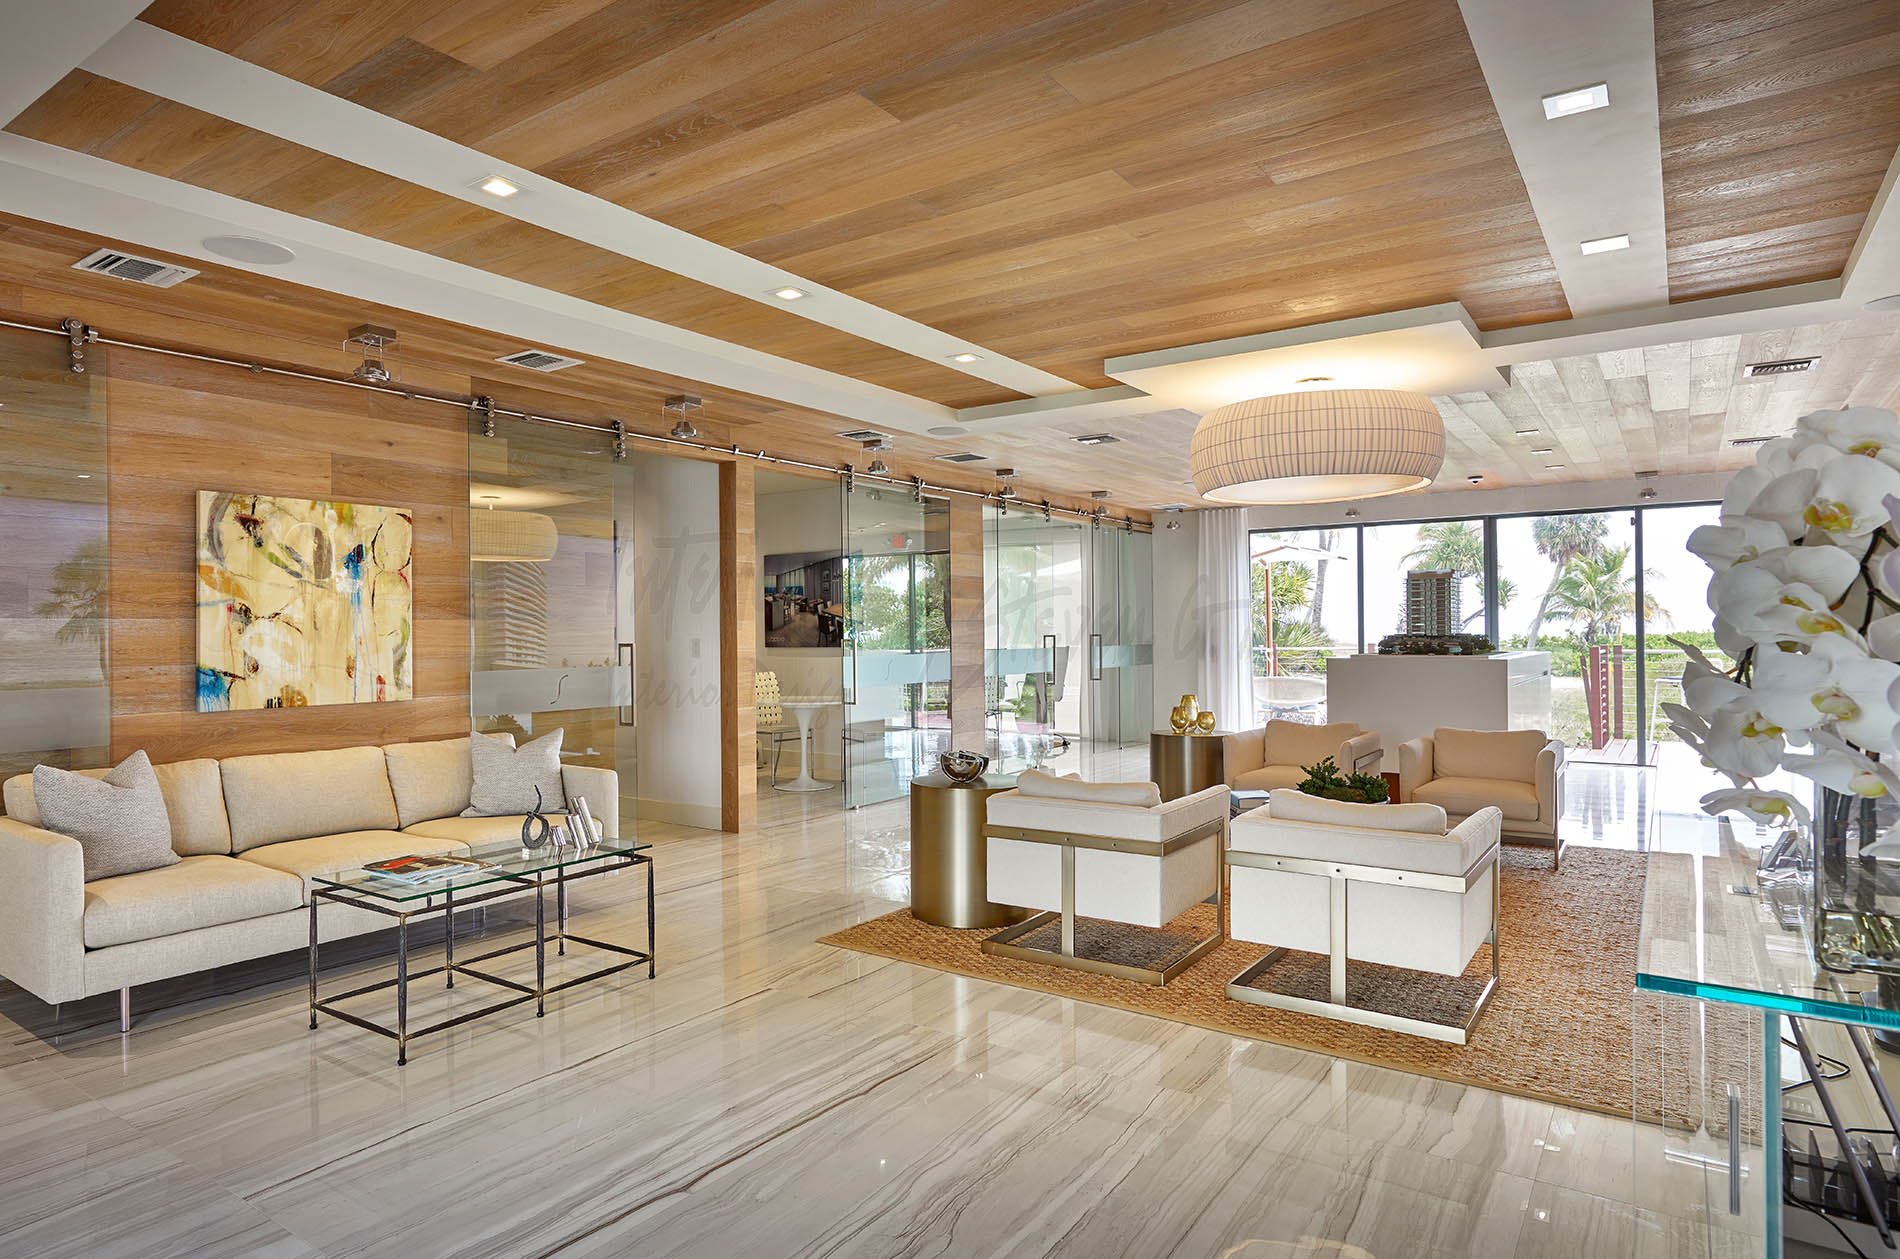 Big commercial interior design trends in 2017 for Commercial interior design